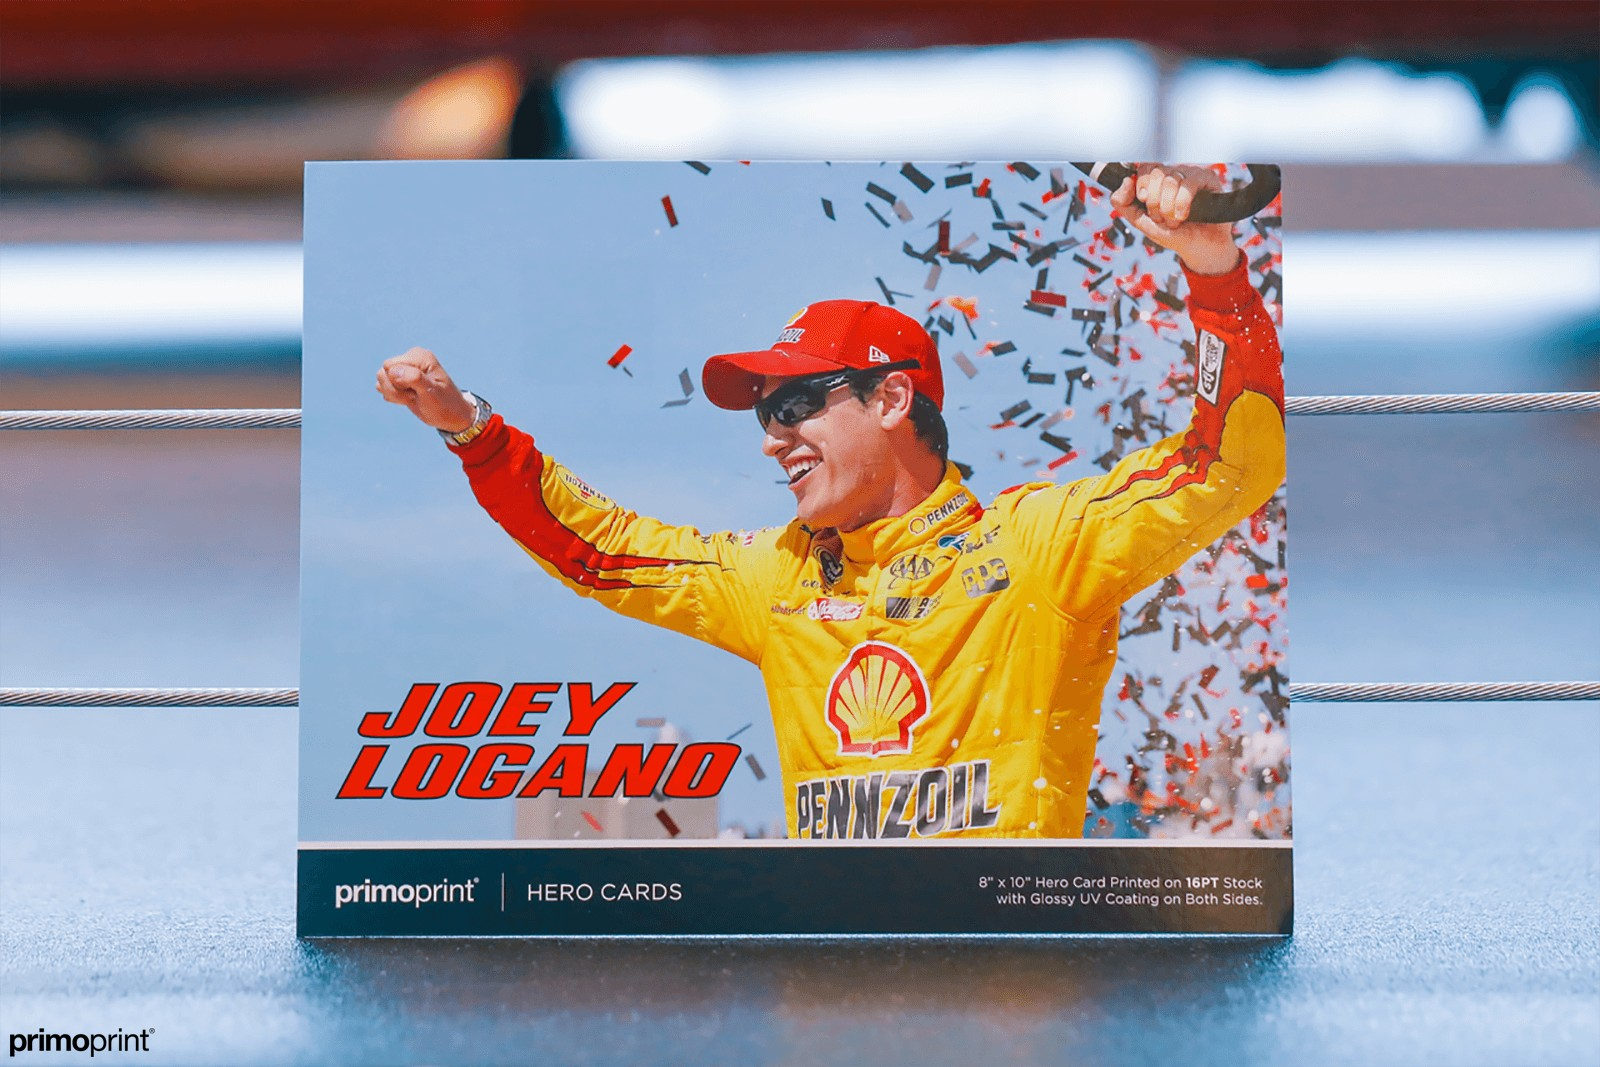 Glossy UV Coated Hero Cards provides a shiny coating that enhances the photos and colors. Great for any racer!